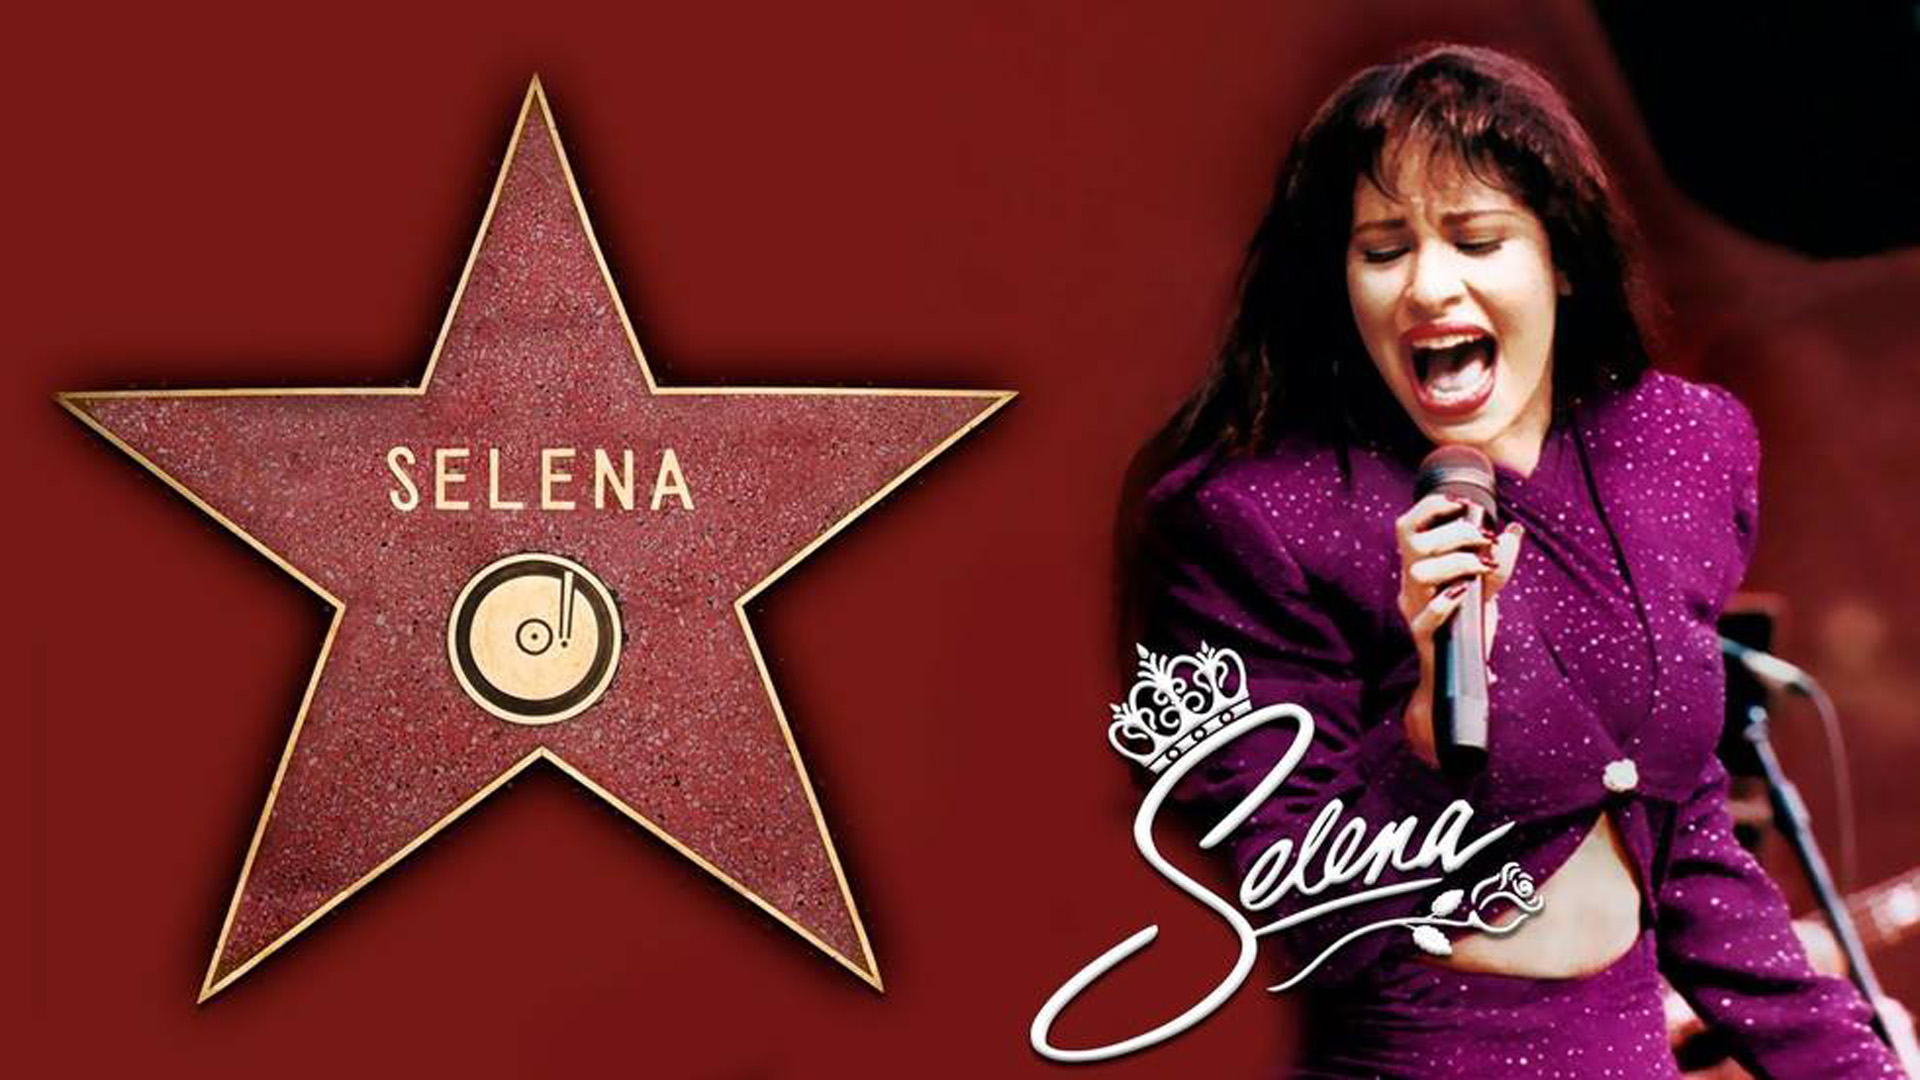 http://www.telemundo.com/sites/nbcutelemundo/files/images/article/cover/2016/06/29/selena-quintanilla-estrella.jpg